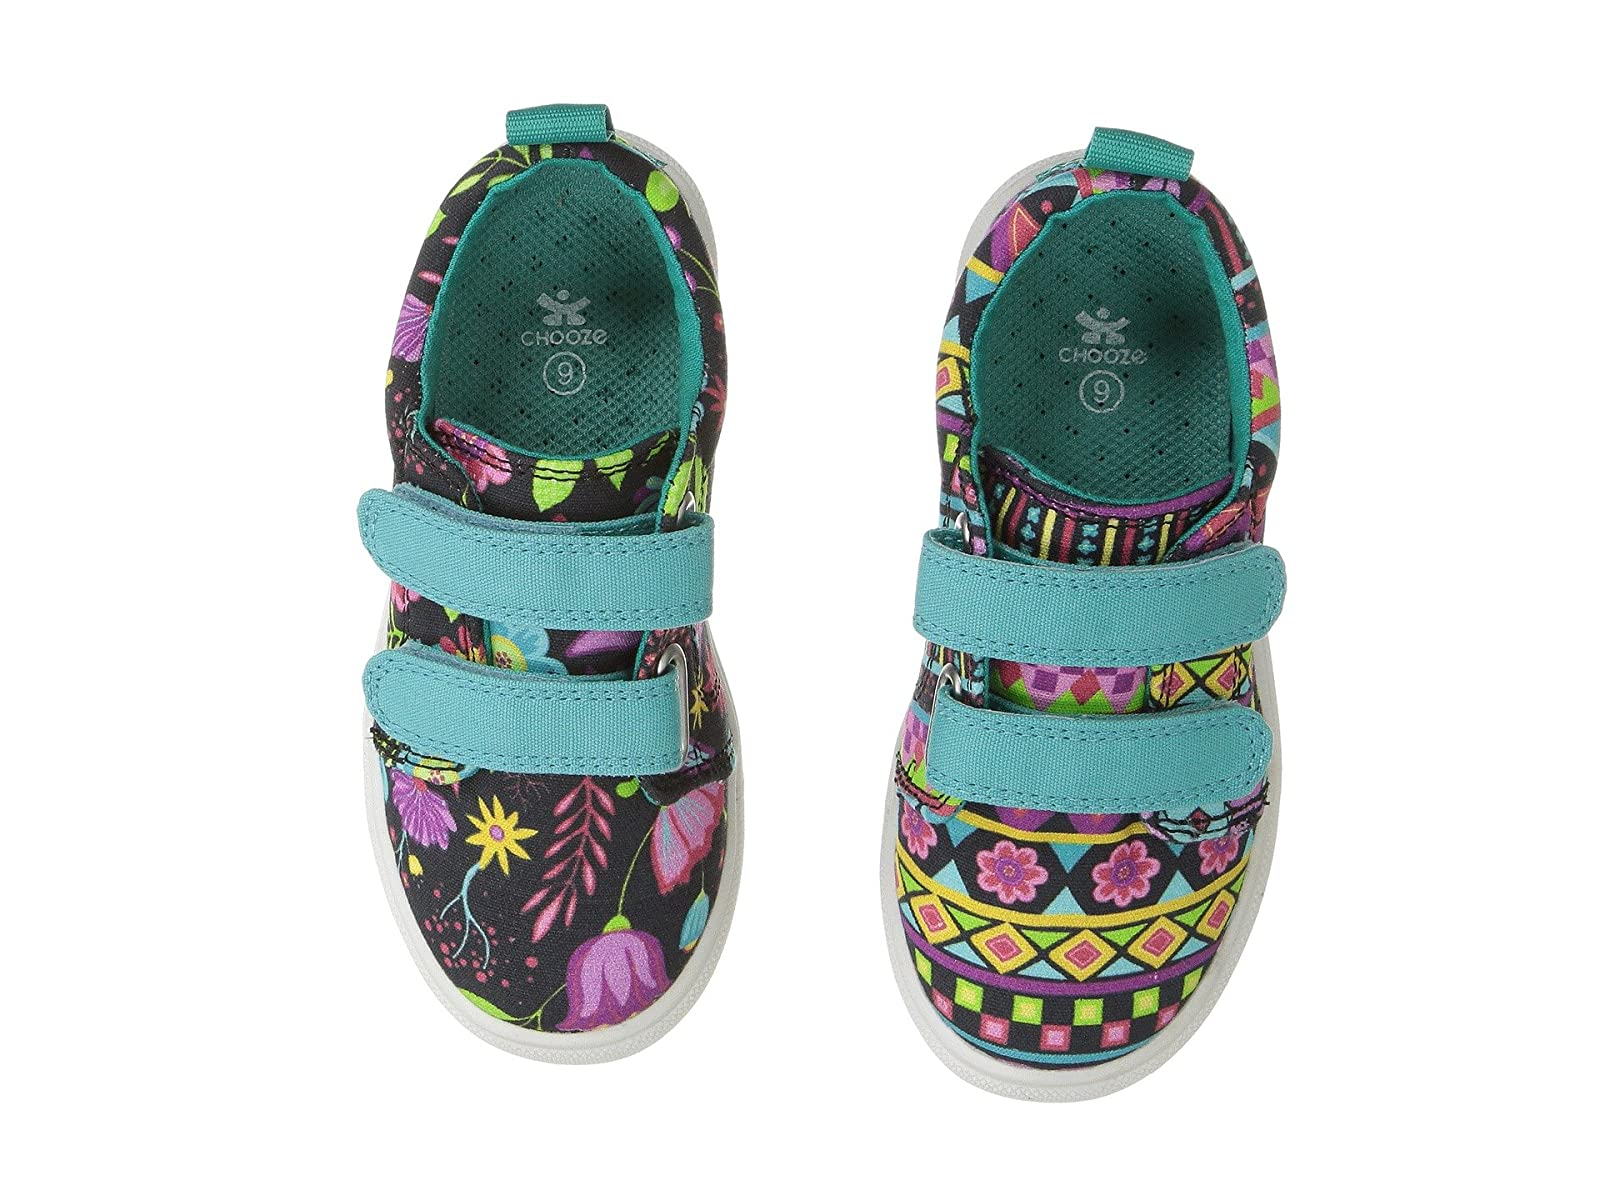 CHOOZE Little Choice (Toddler/Little Kid)Atmospheric grades have affordable shoes